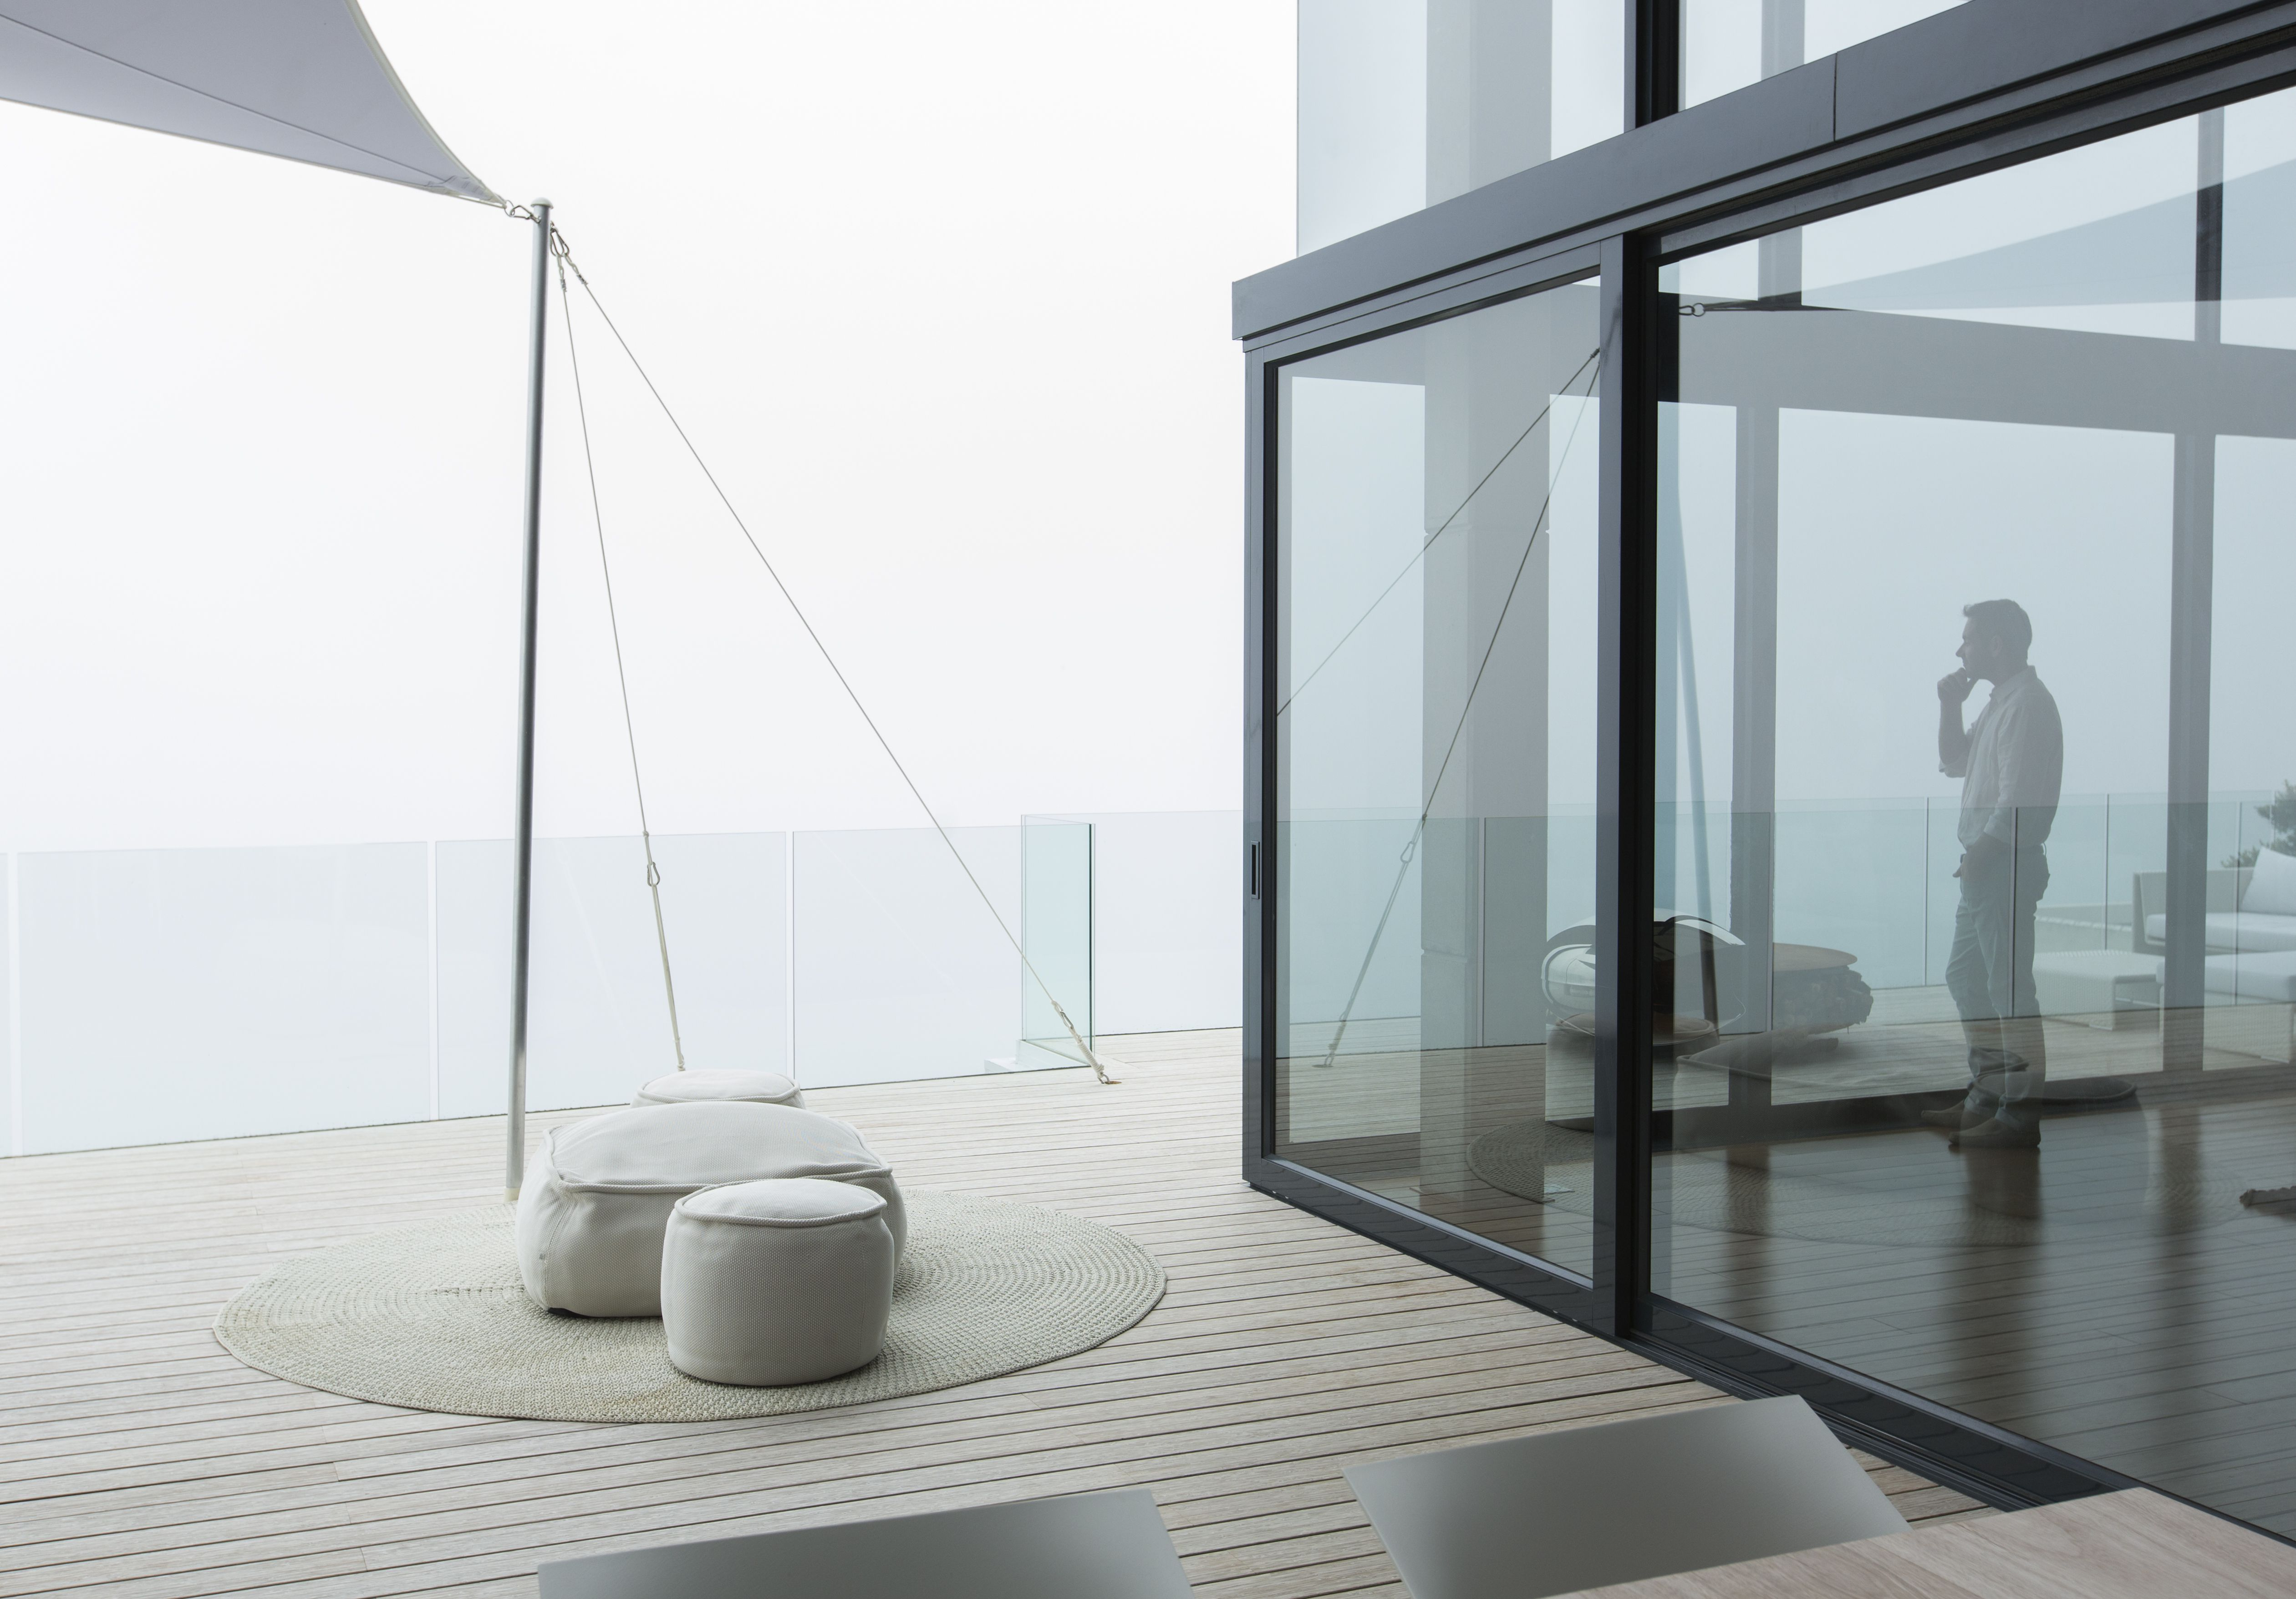 Securing Sliding Glass Doors For Safety